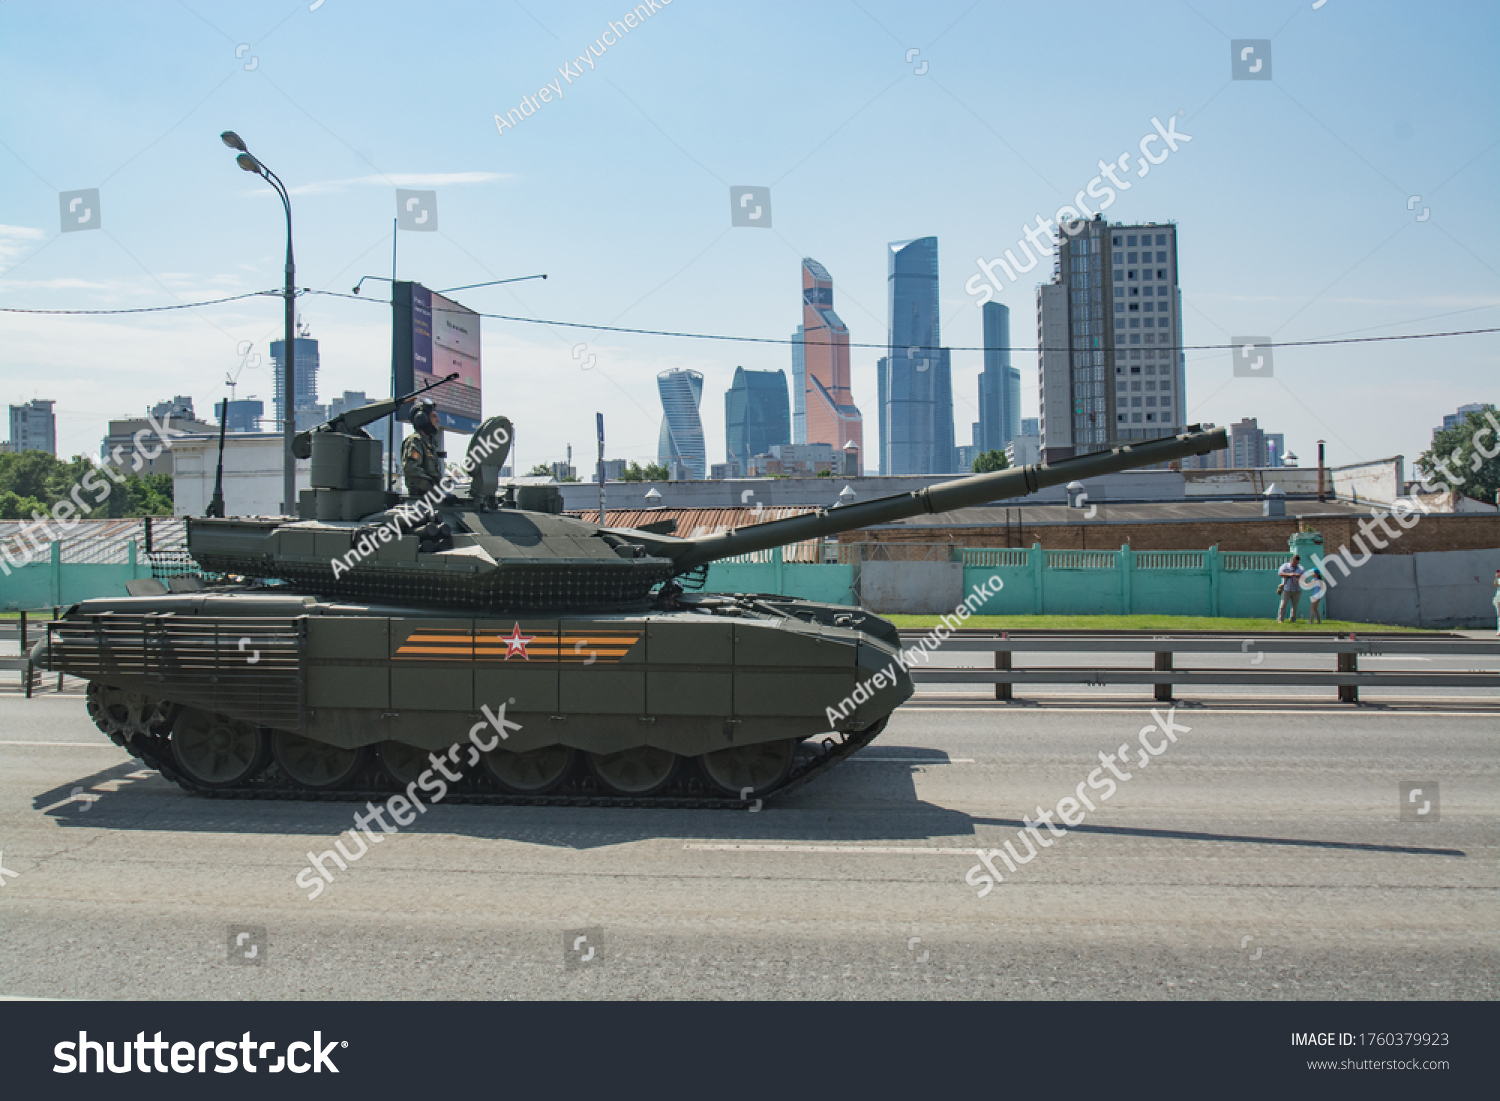 https://image.shutterstock.com/z/stock-photo-june-moscow-russia-the-t-m-tank-returns-after-participating-in-the-rehearsal-of-the-1760379923.jpg